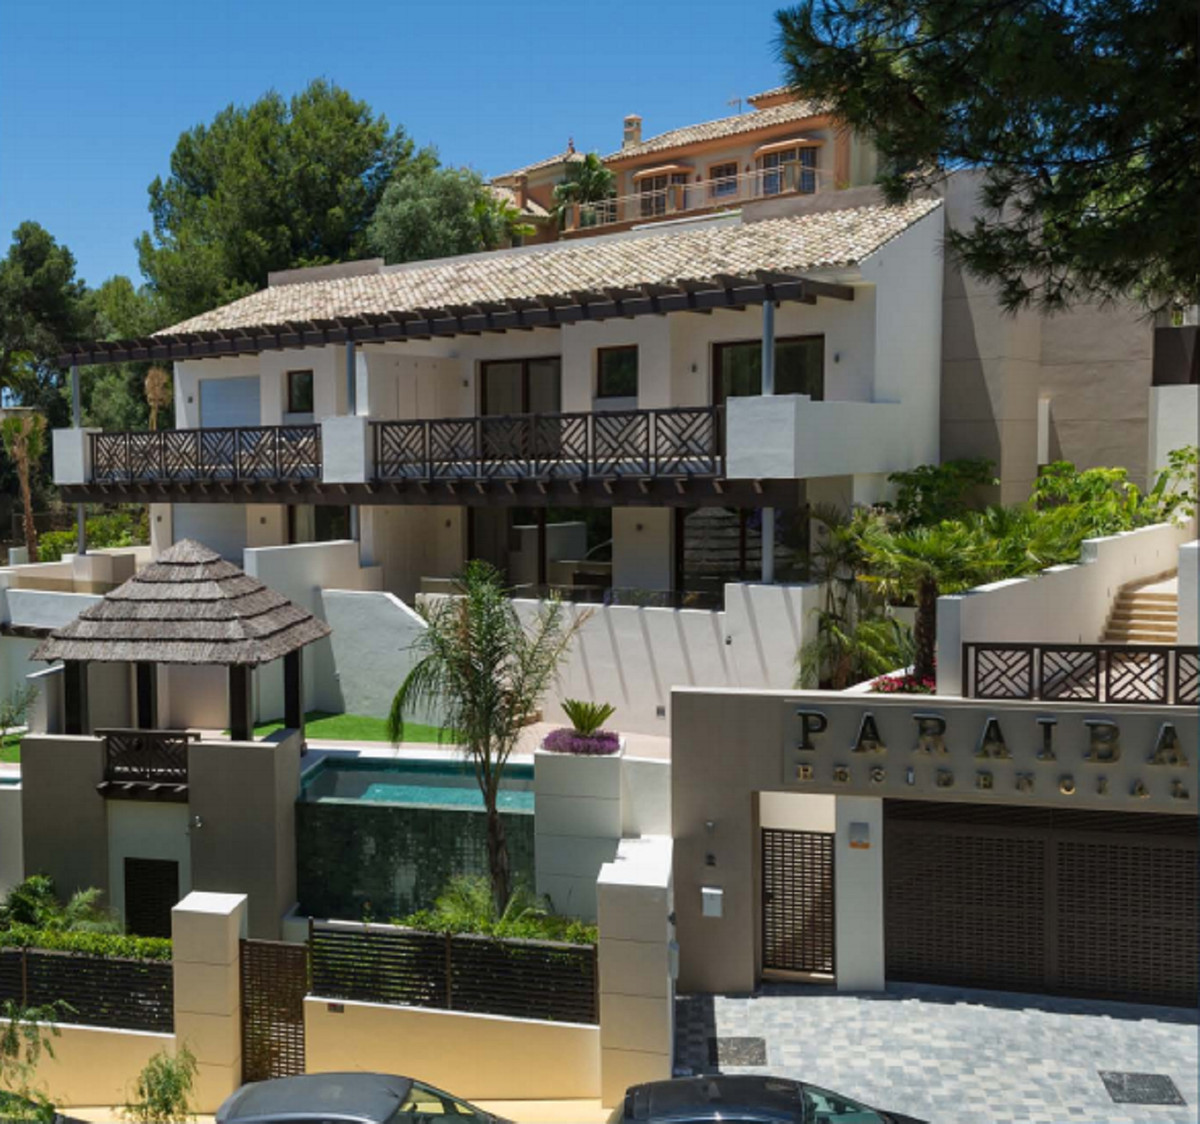 WELCOME TO PARAIBA!  Paraiba Residencial is a unique project located in the heart of Marbella and co, Spain